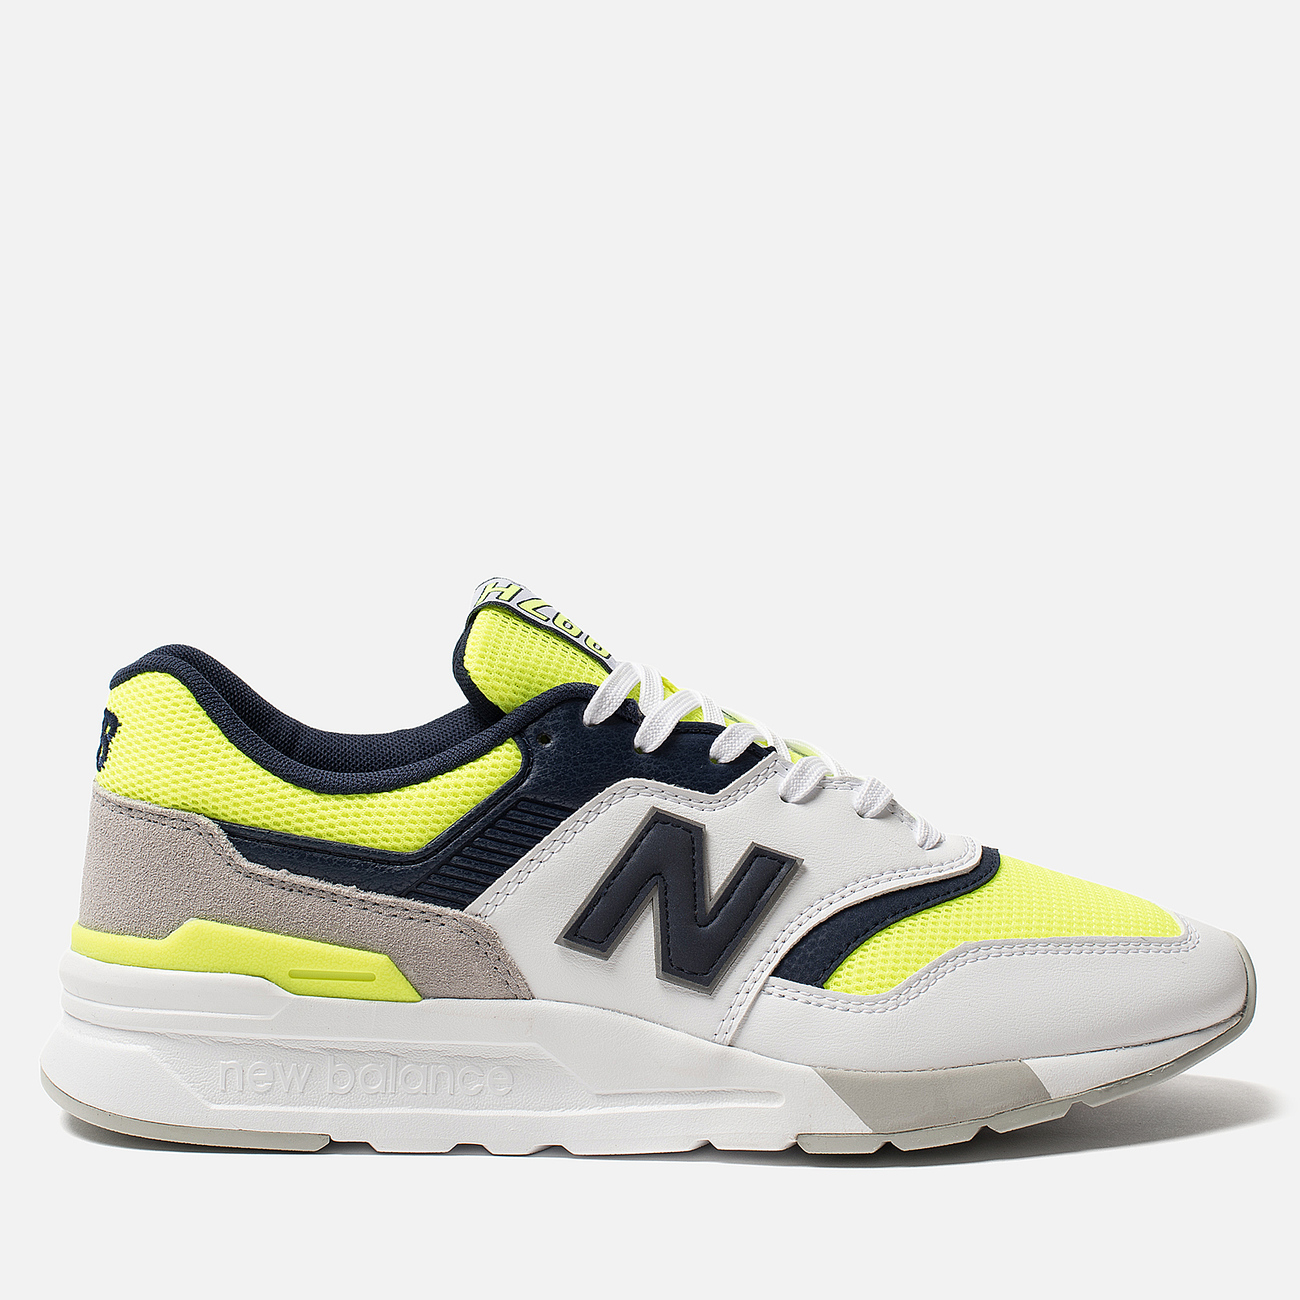 Мужские кроссовки New Balance CM997HCR White/Blue/Neon Green